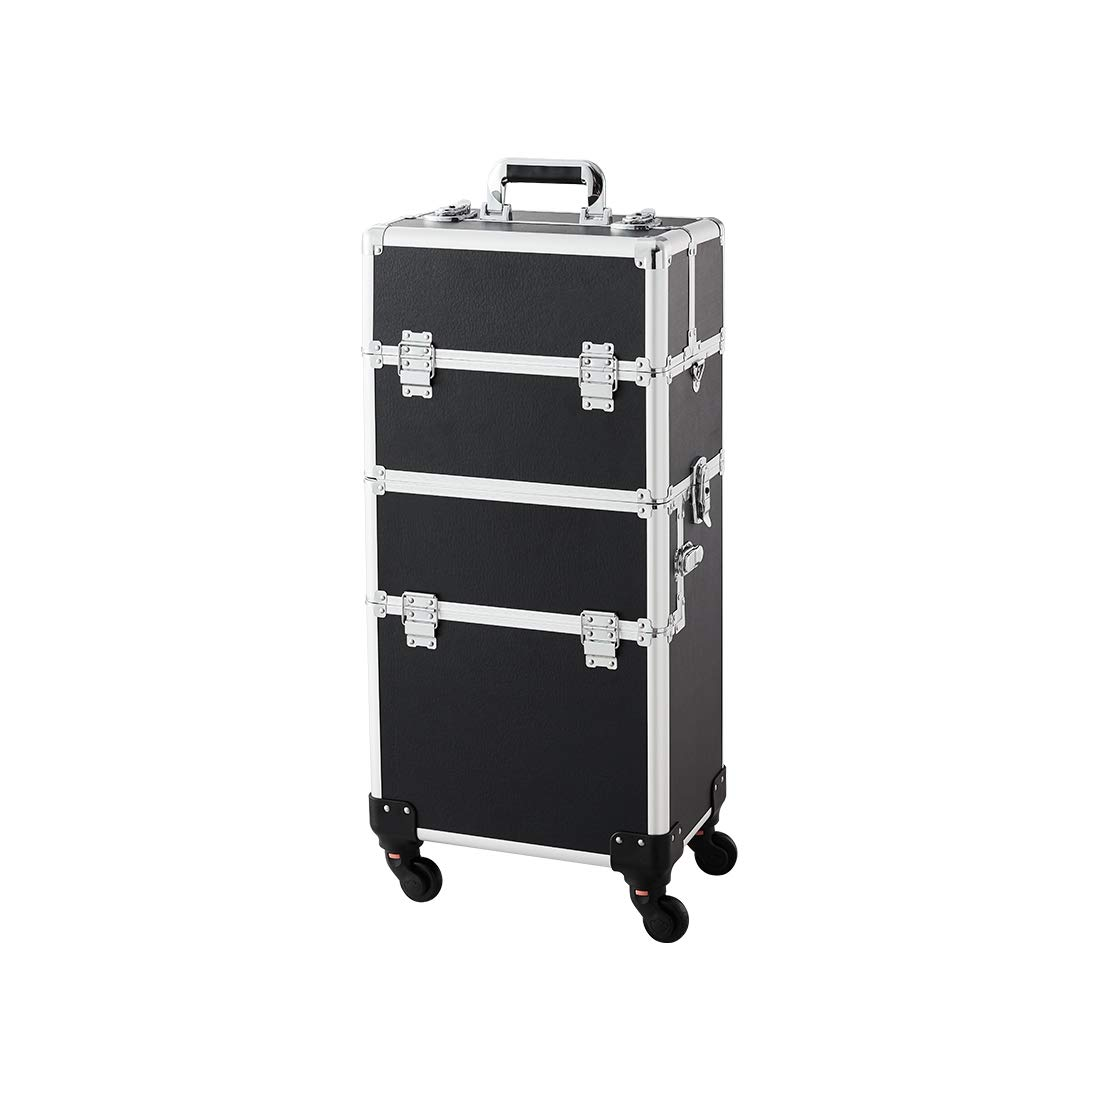 Makeup Case - 3 In 1 Aluminum Professional Rolling Cosmetics Storage Organizer With Locks and Folding Trays Black